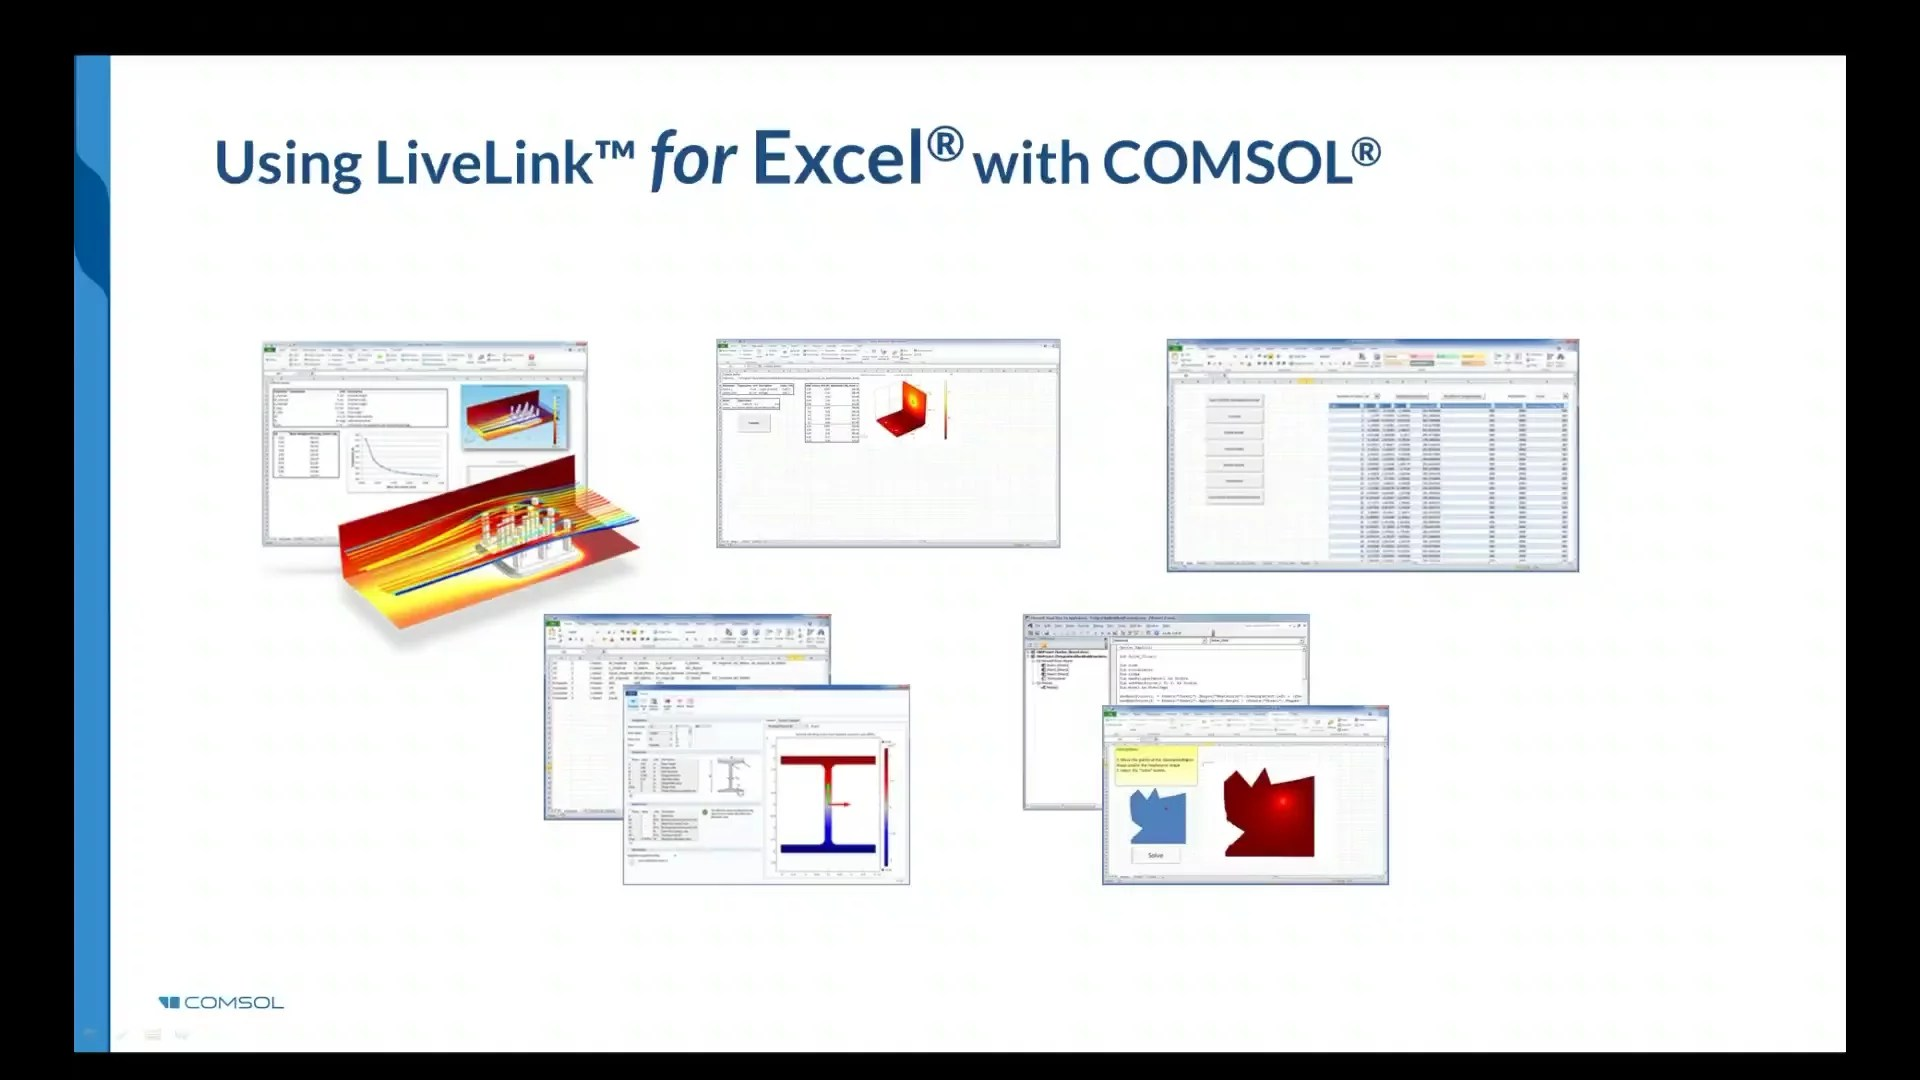 Vba Stock Simulation Using Excel With Comsol Multiphysics Simulations